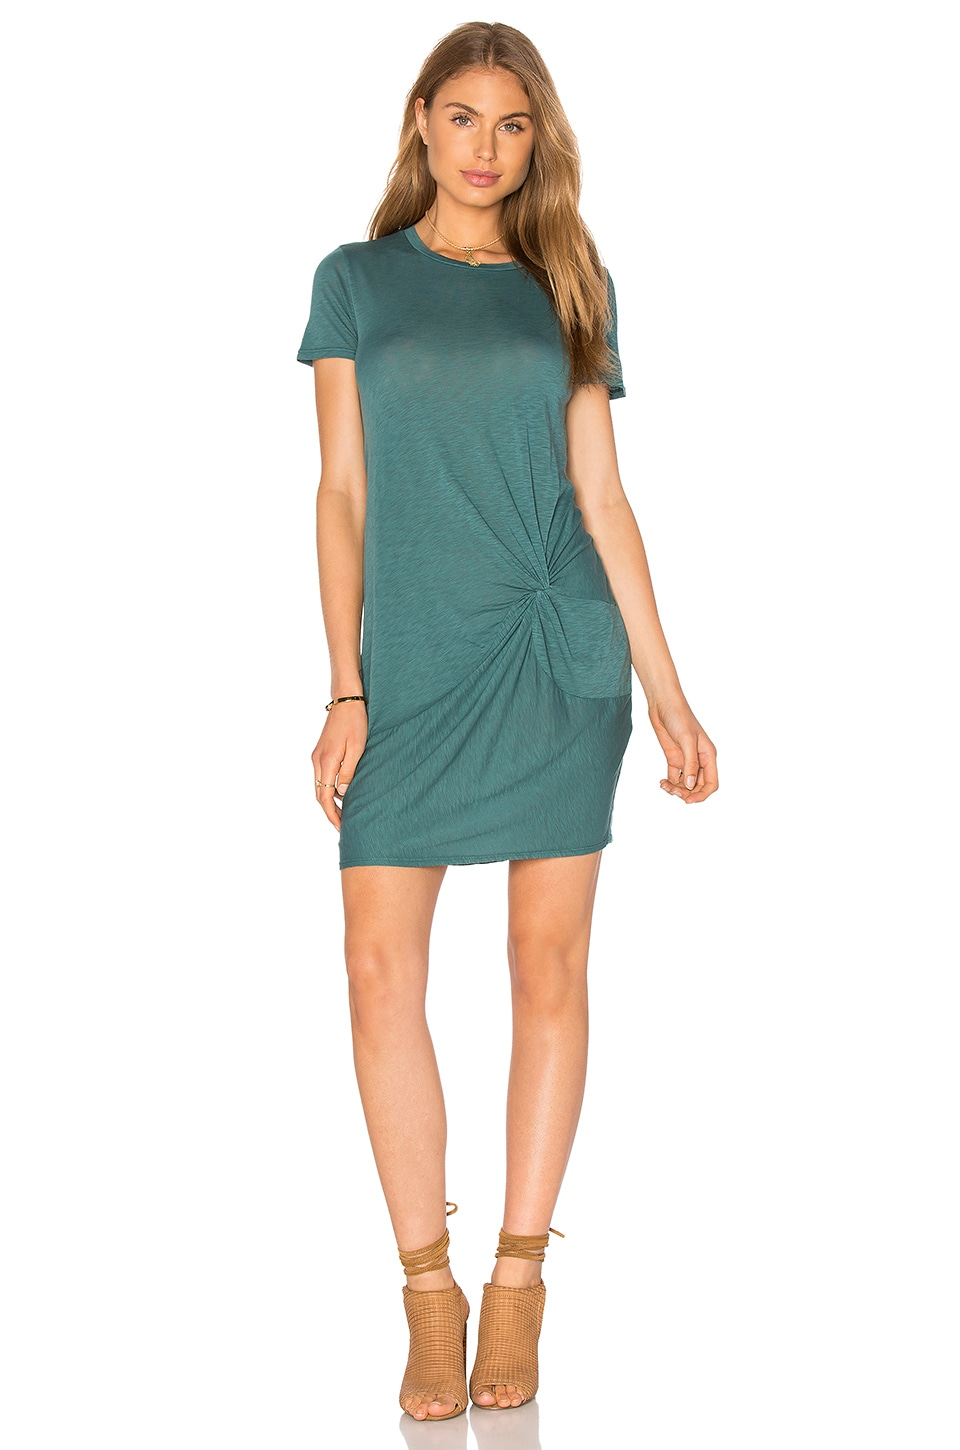 Knotted Mini Dress by Stateside